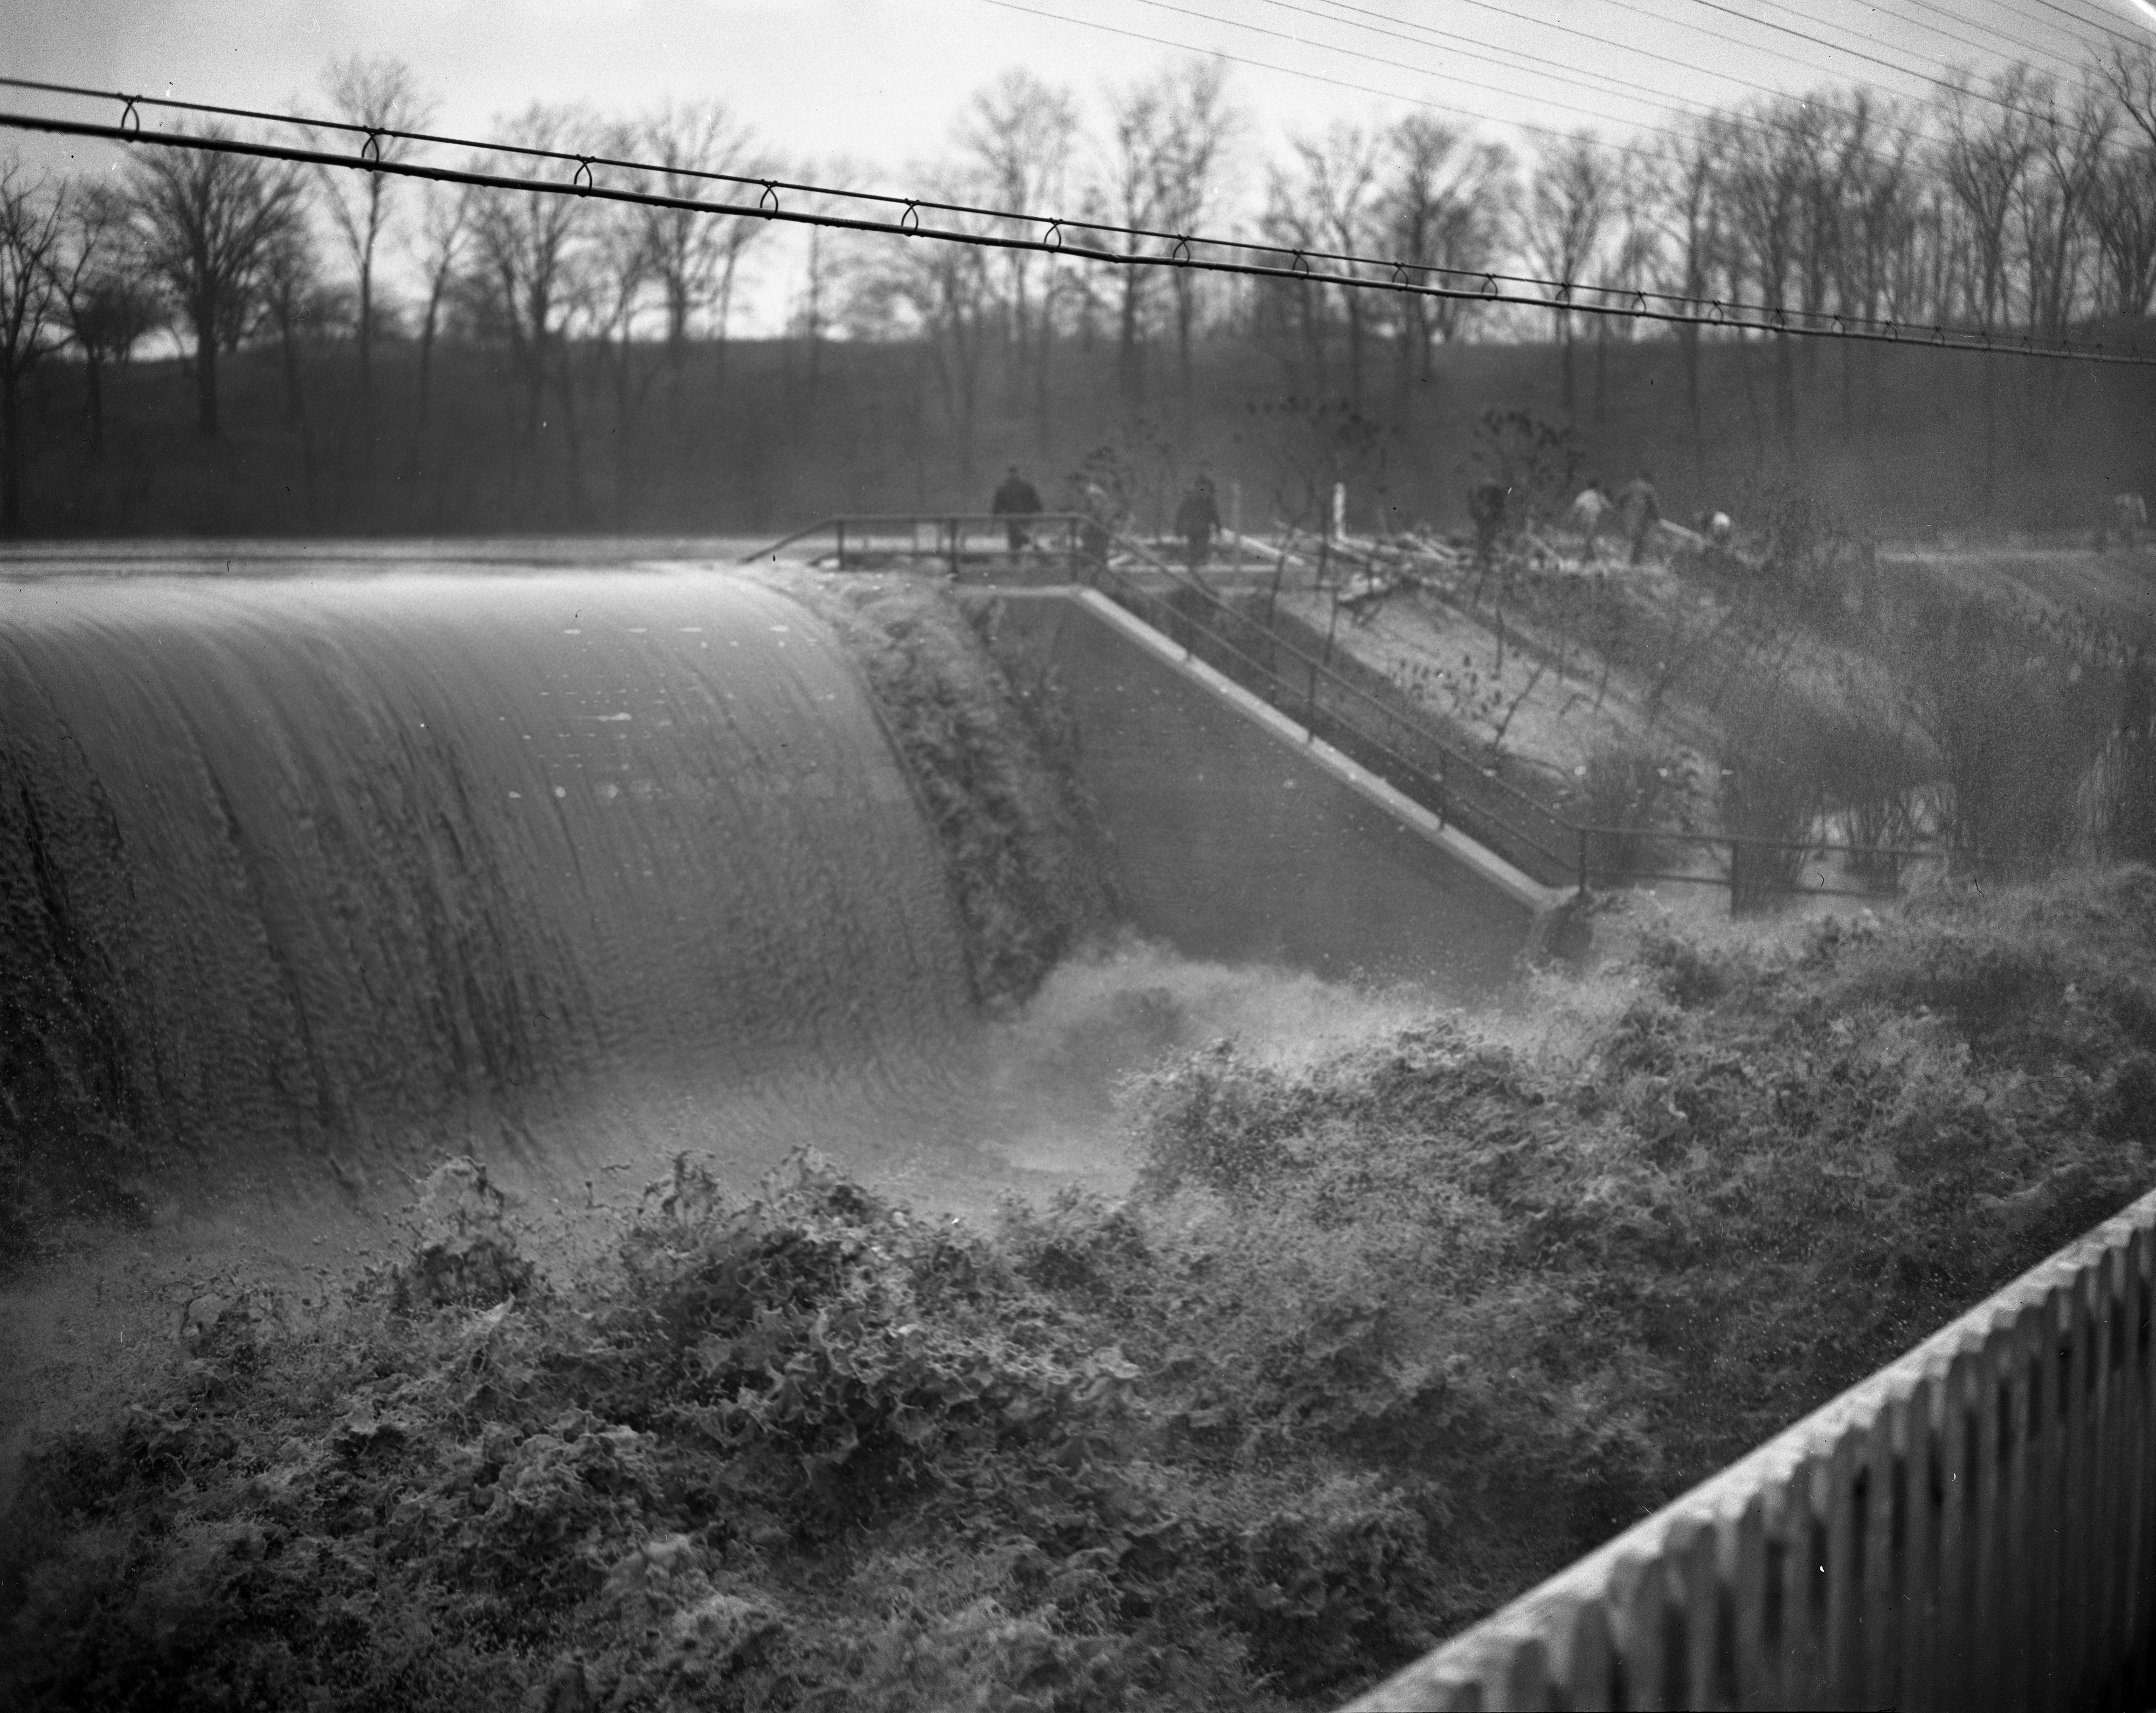 Saline Dam Nears Crest, April 1947 image